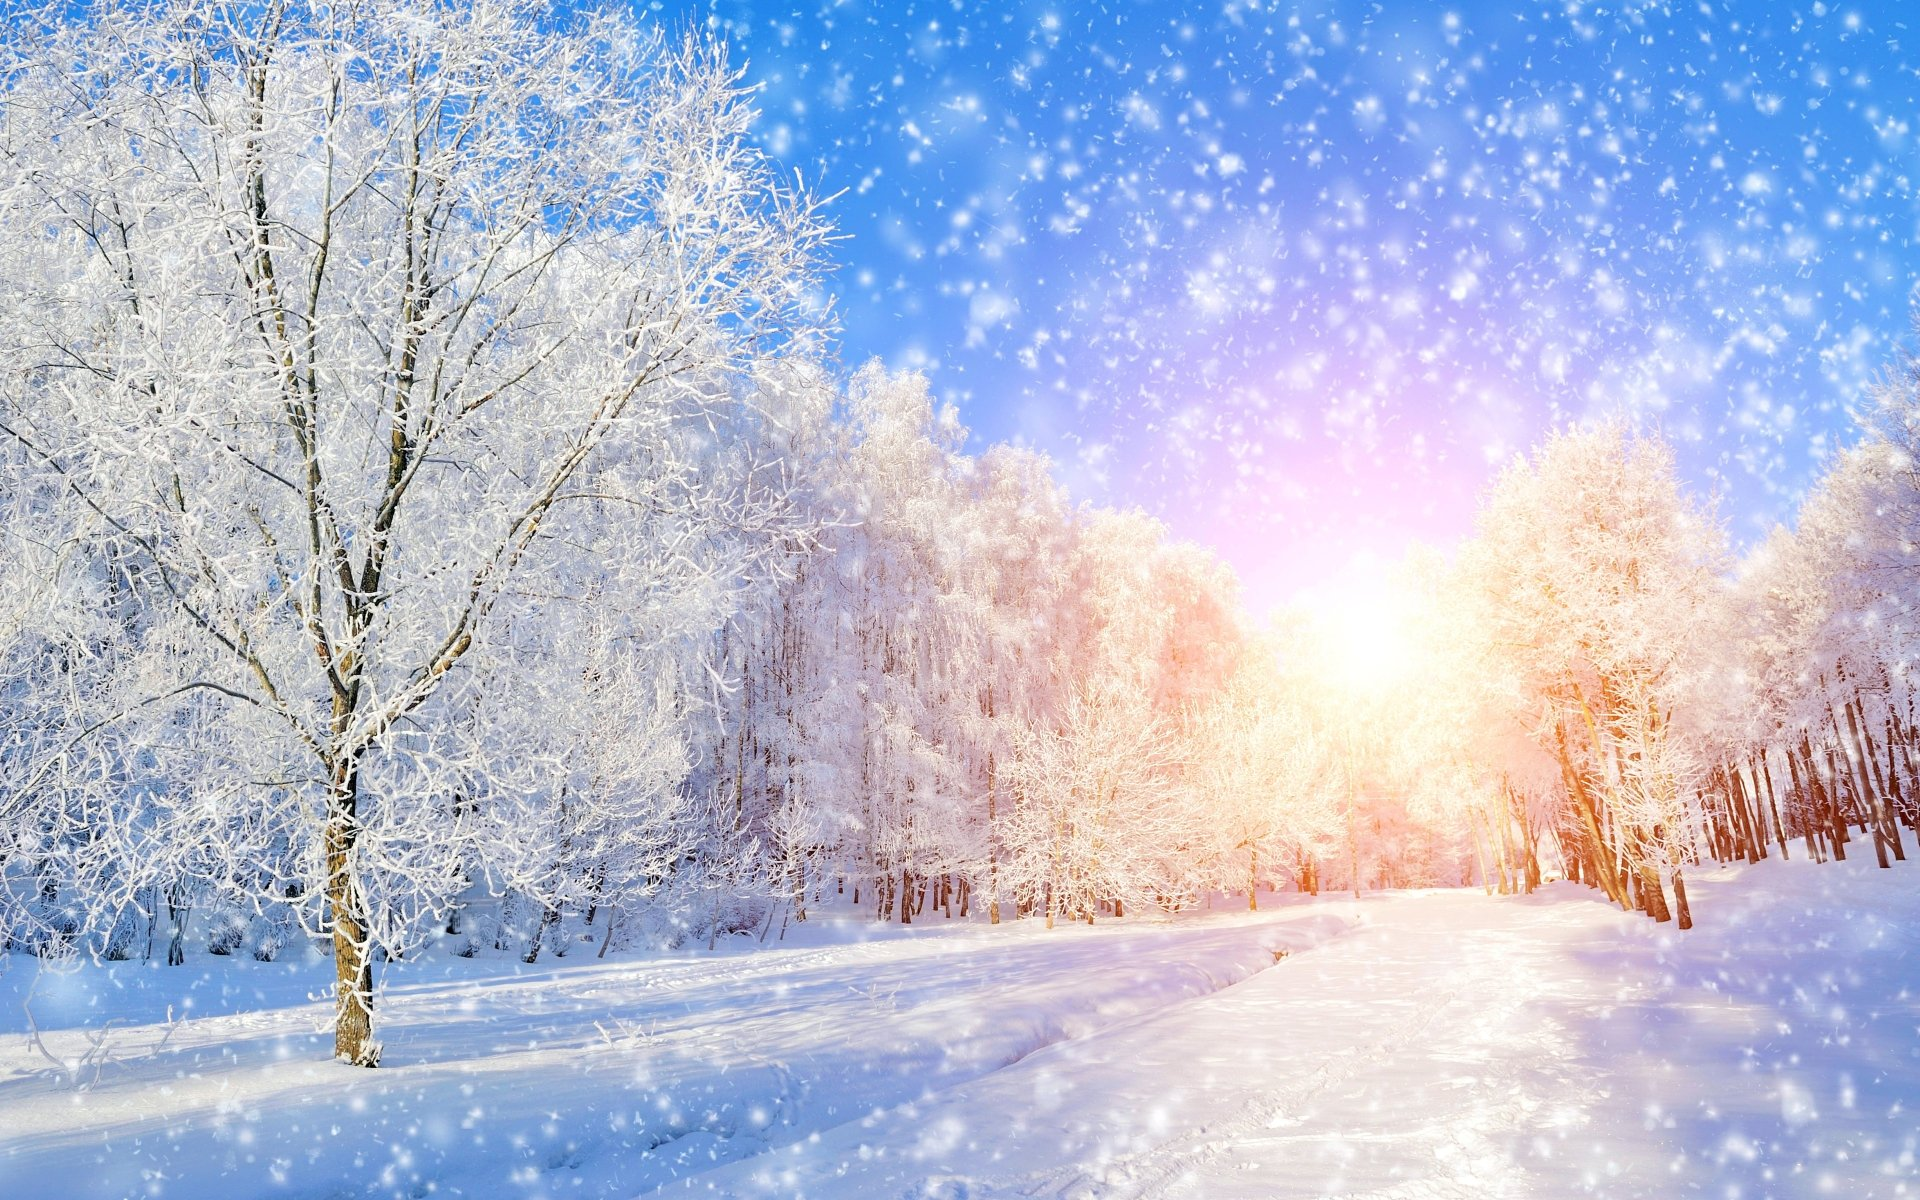 winter time wallpaper cool-#11